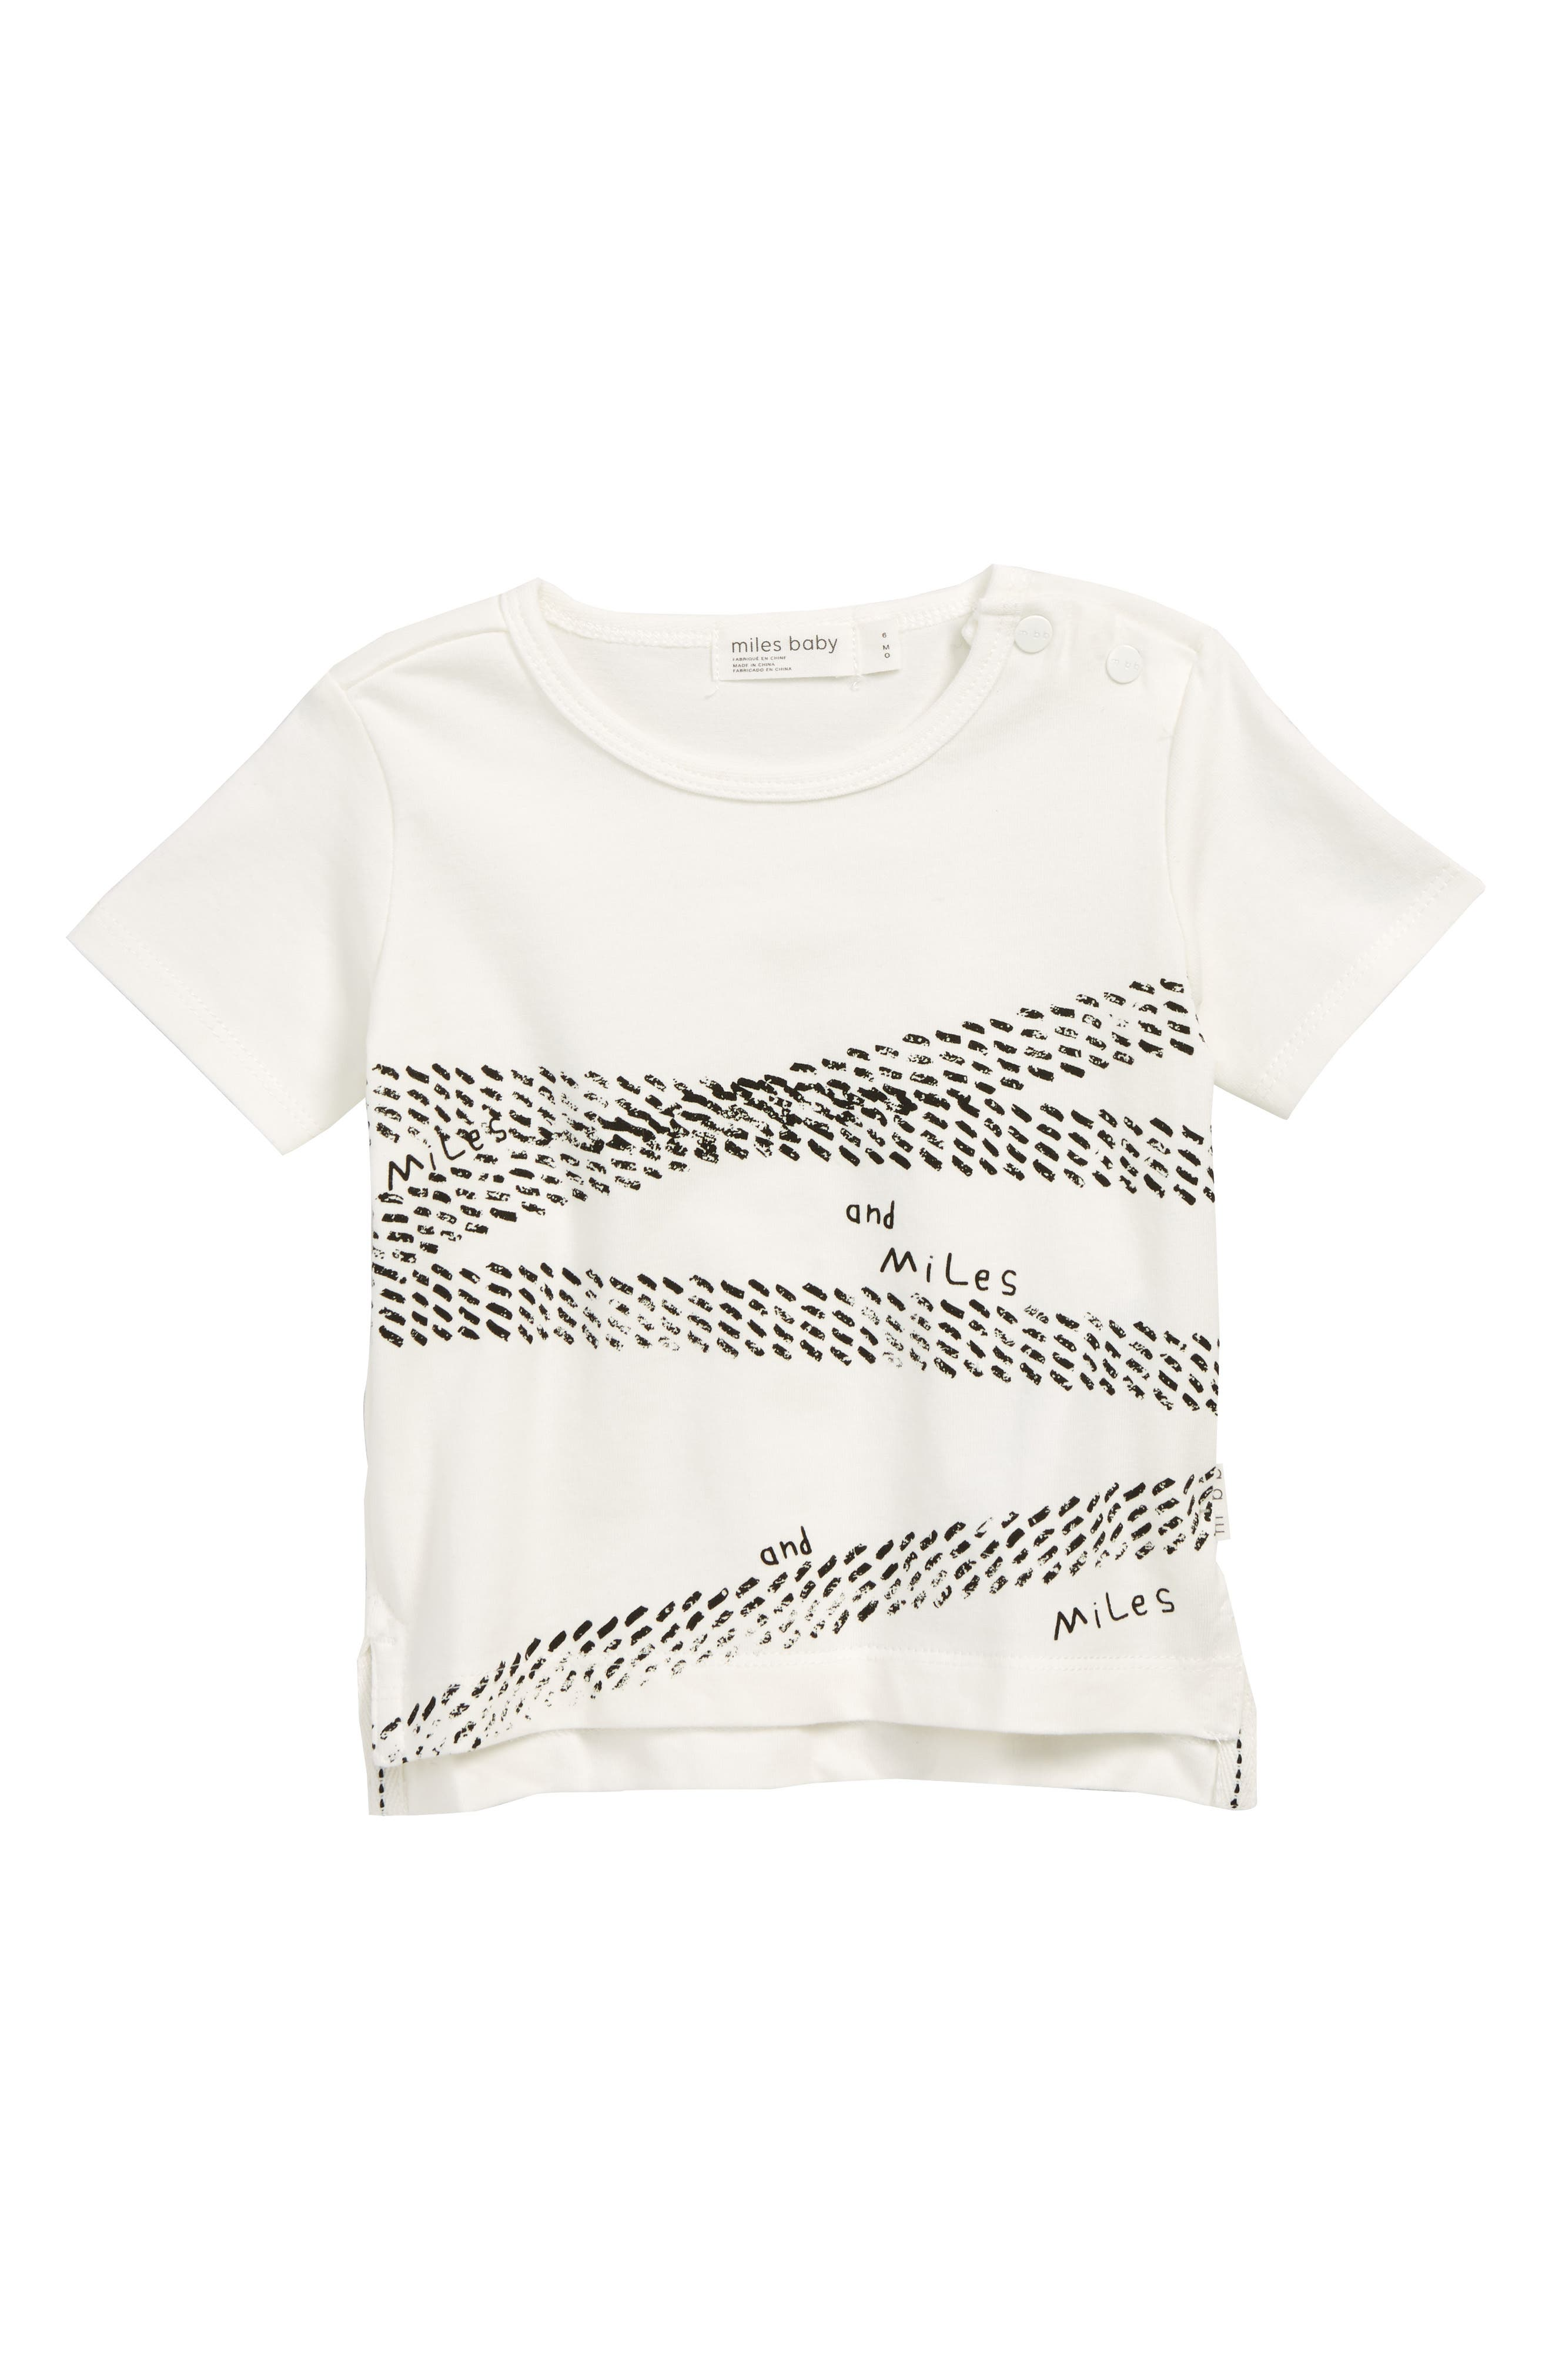 MILES BABY T-Shirt, Main, color, OFF WHITE